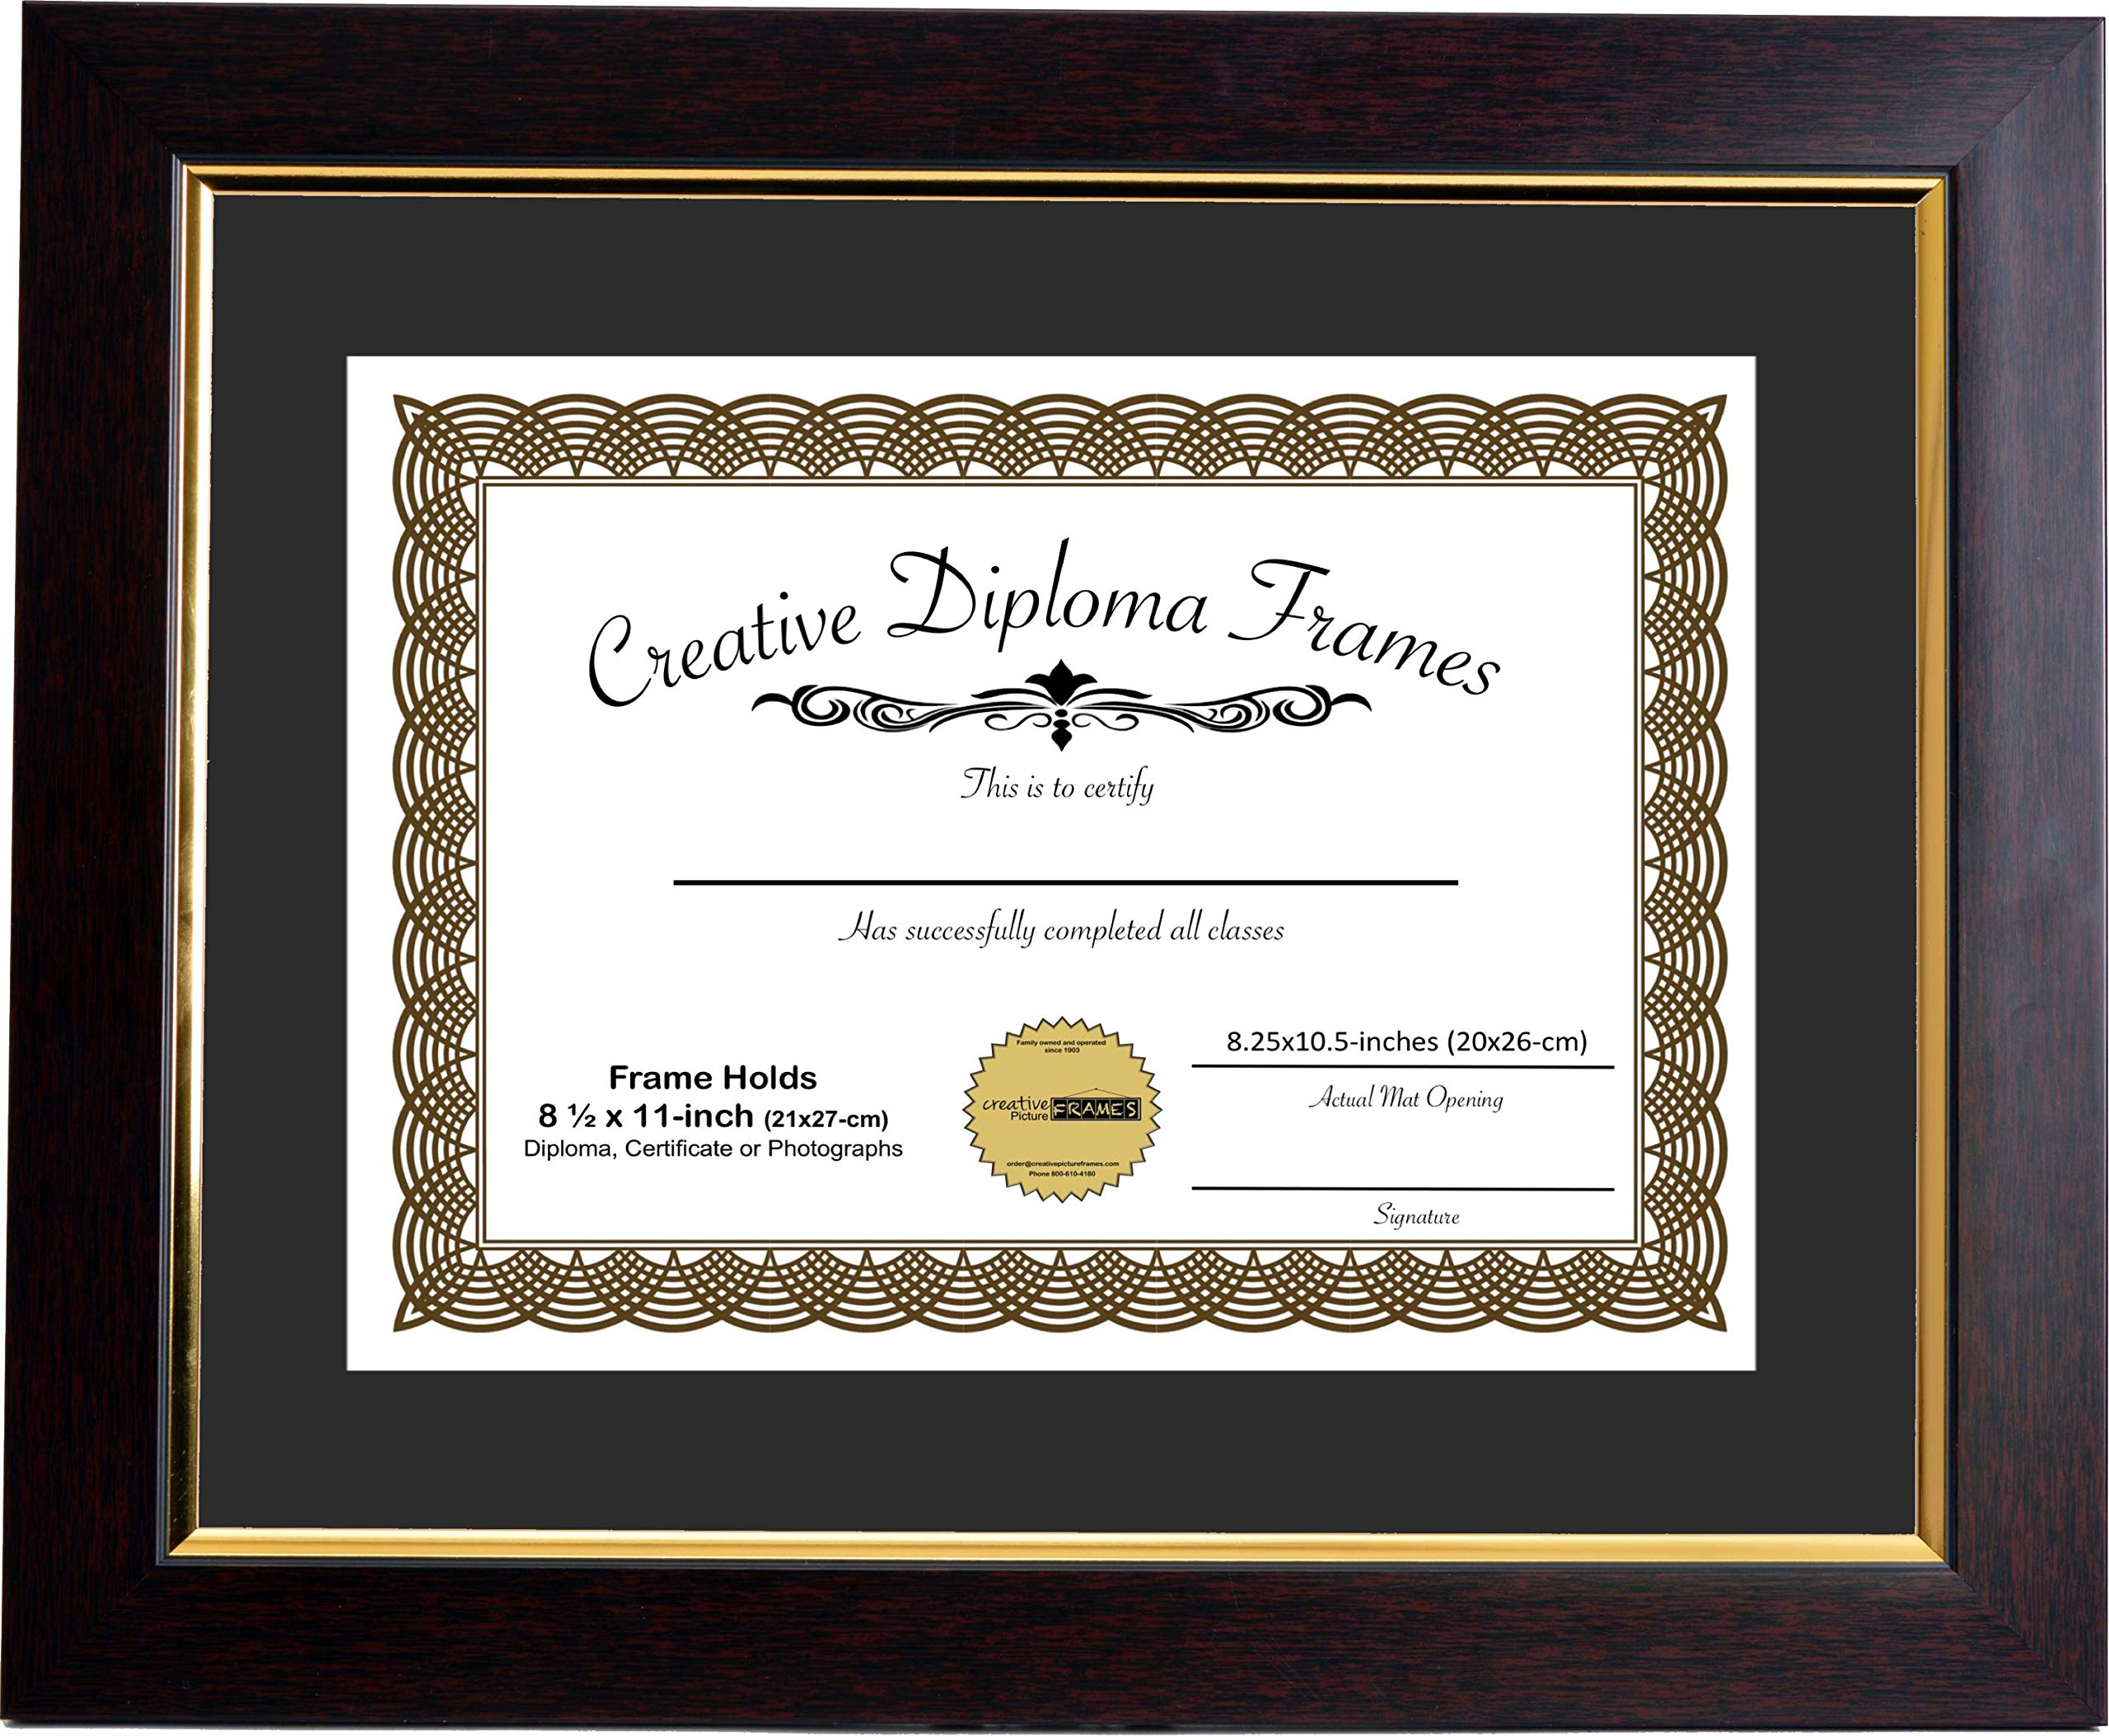 CreativePF [mhg024] 11x14-inch Matted Eco Mahogany Finish Diploma Frame Gold Lip with Black/White Core Mat Holds 8.5x11-inch Media, with Installed Hangers by Creative Picture Frames